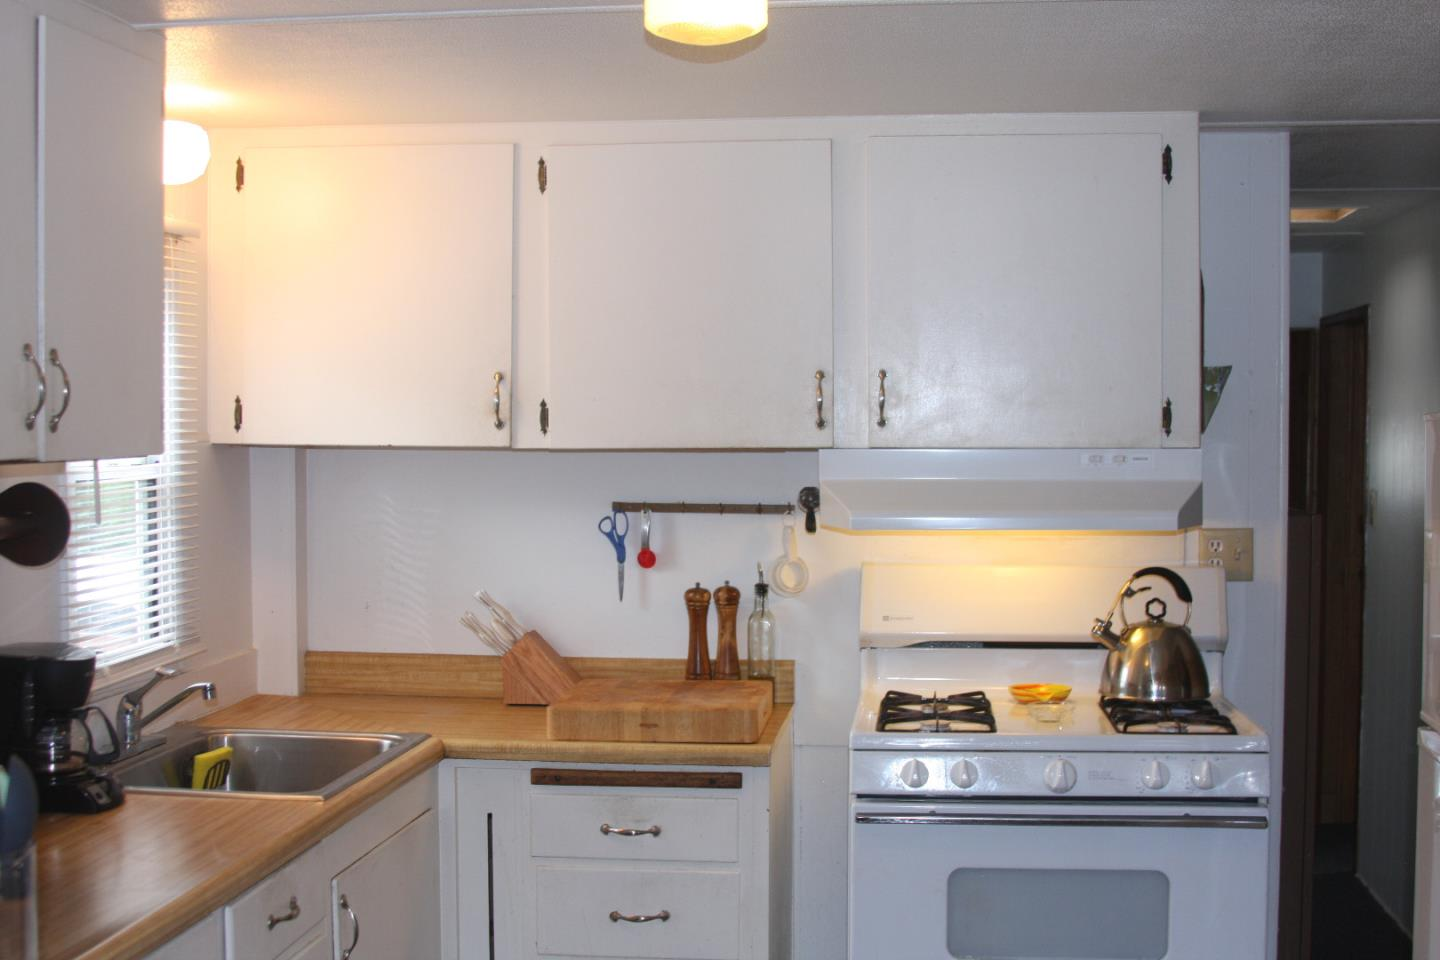 Additional photo for property listing at 220 Mar Vista Drive 220 Mar Vista Drive Aptos, Kalifornien 95003 Vereinigte Staaten